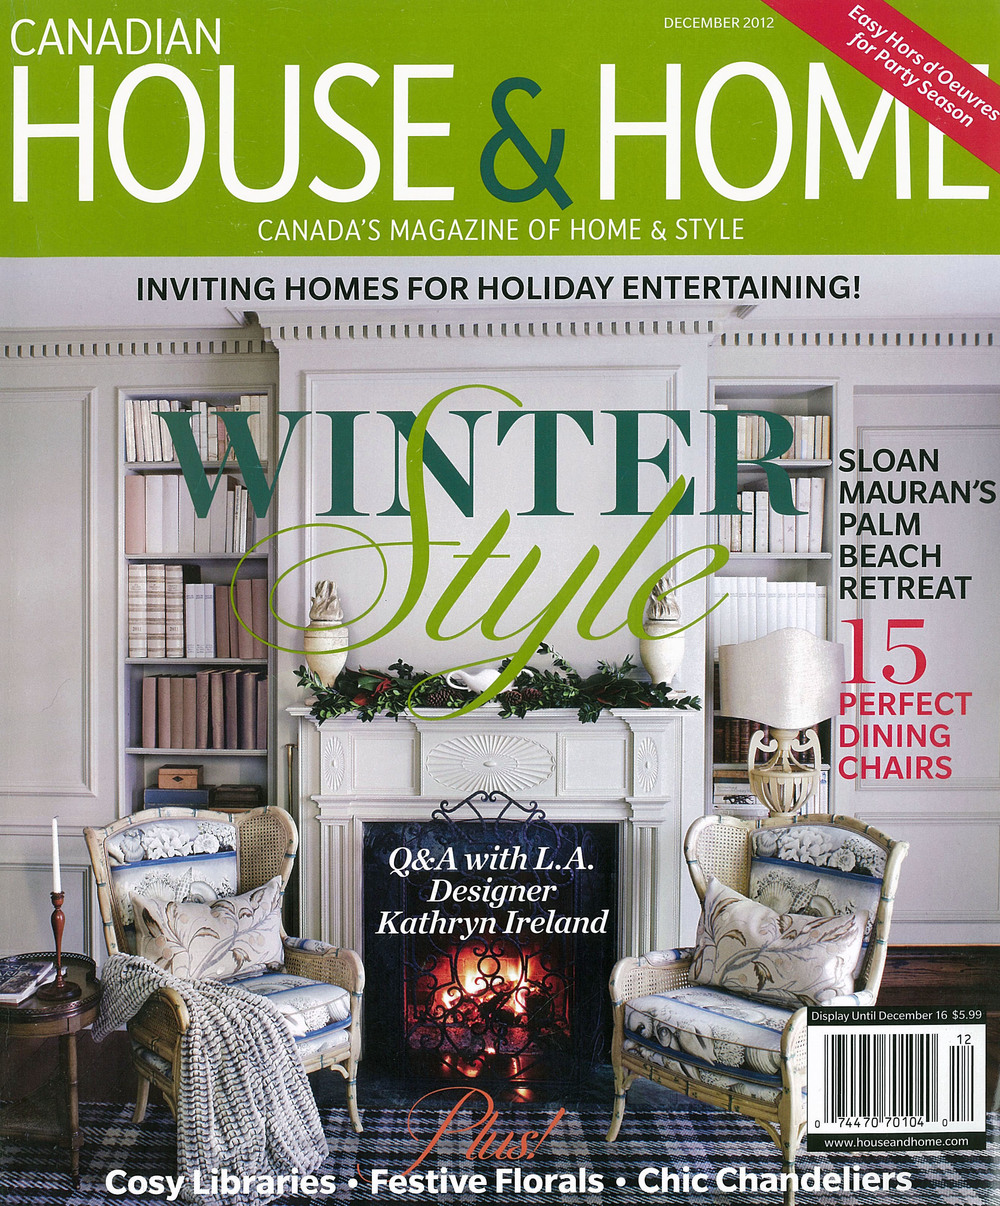 House & Home cover.jpg